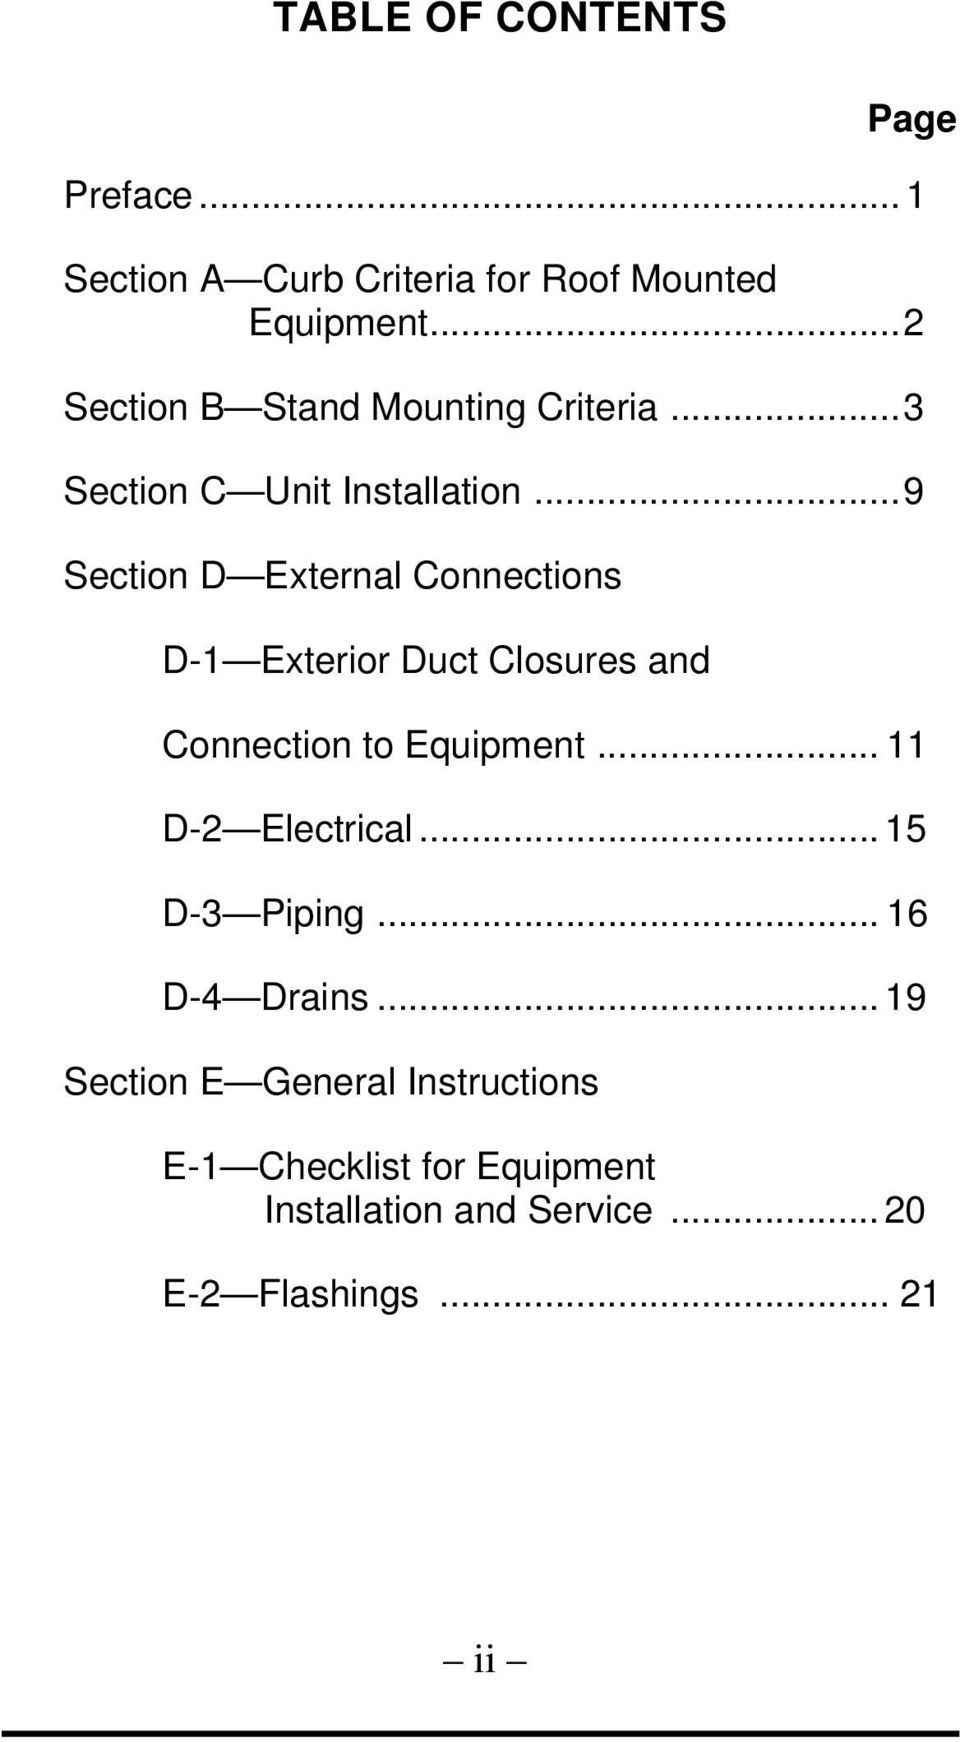 .. 9 Section D External Connections D-1 Exterior Duct Closures and Connection to Equipment.